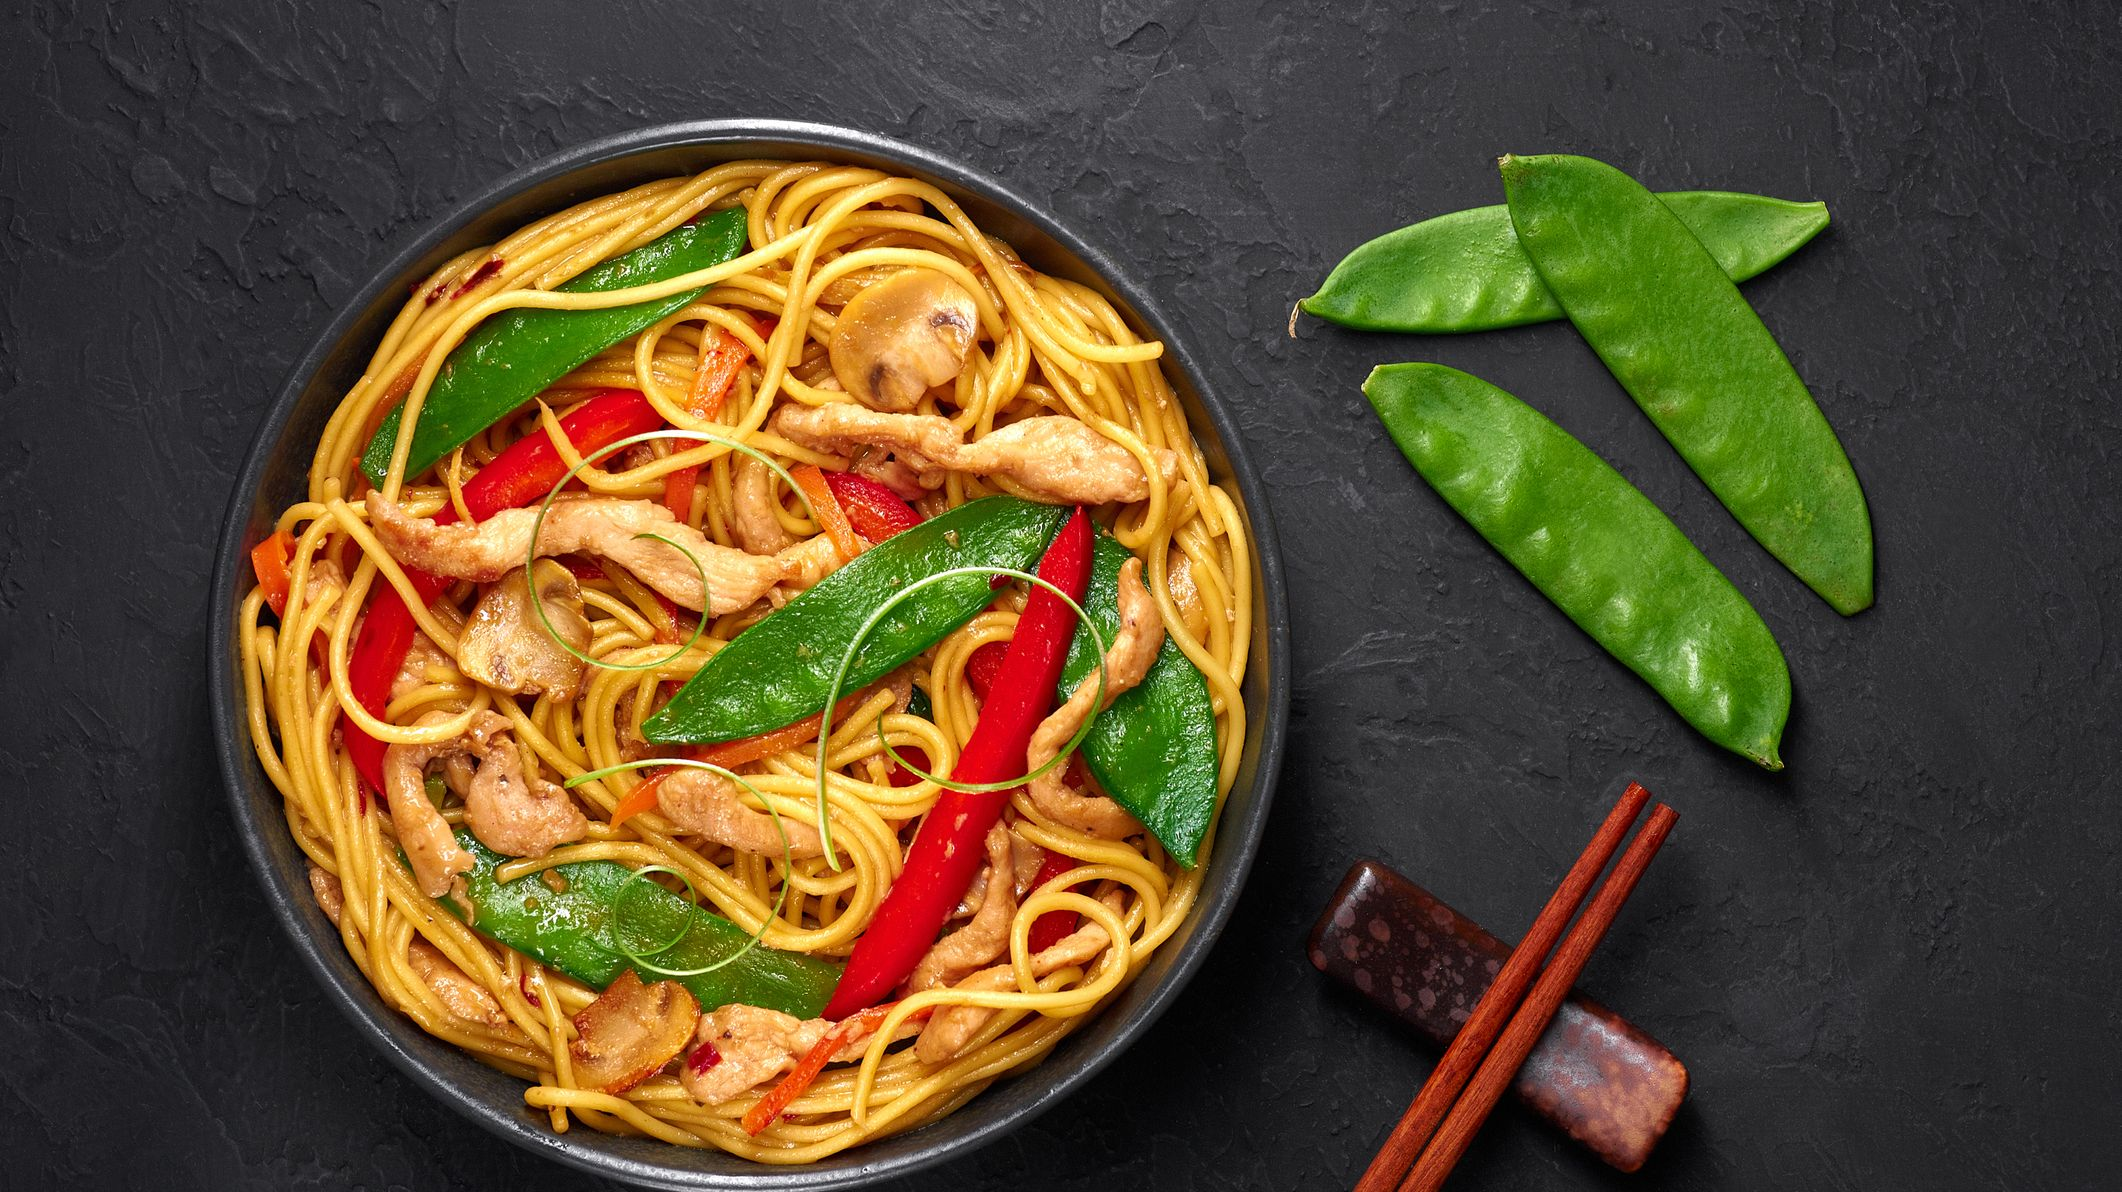 Chow Mein vs. Lo Mein: What's the Difference?